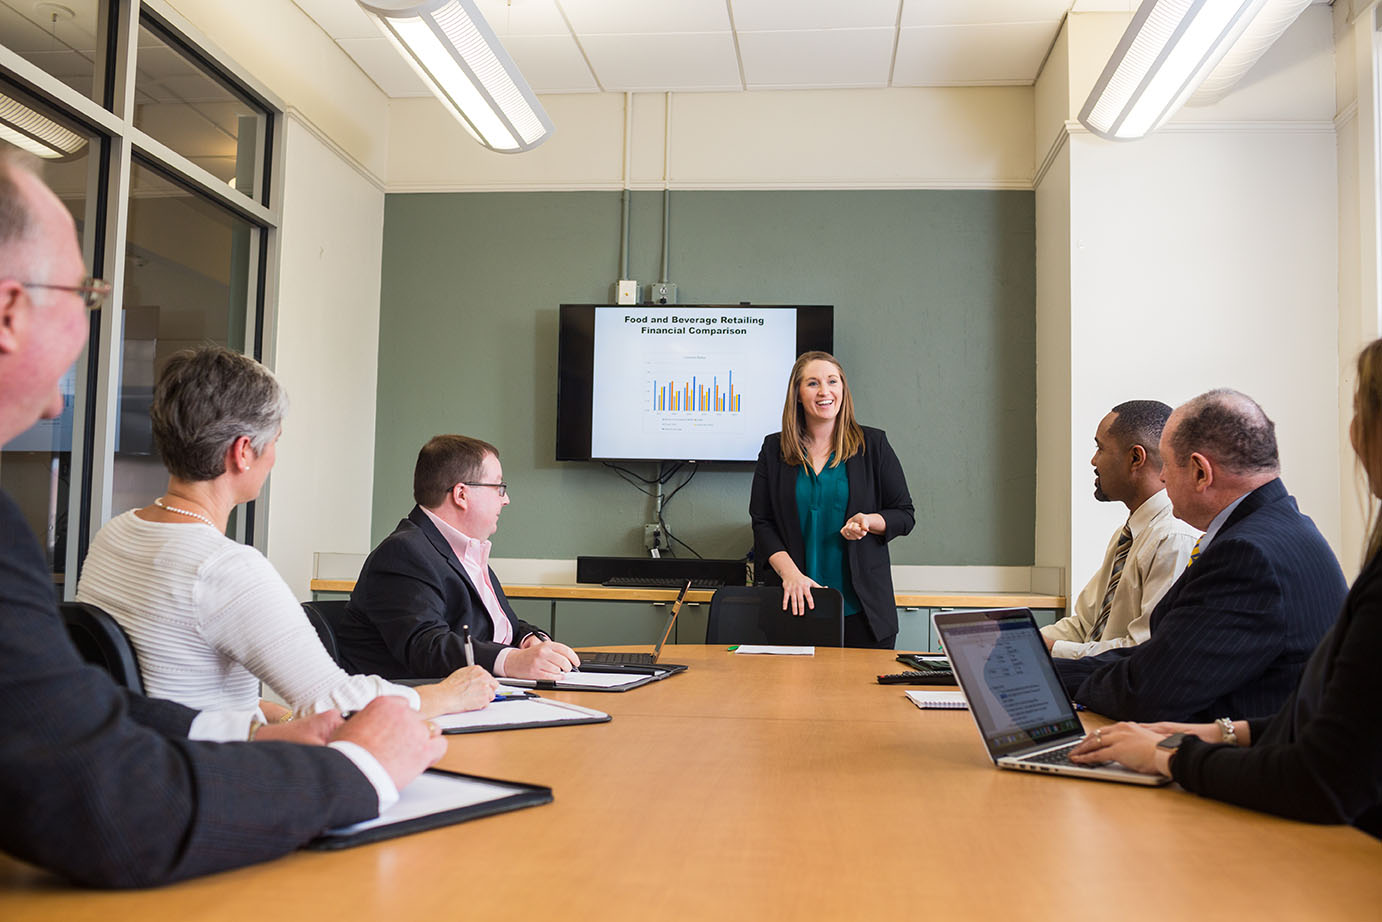 an MBA student presented her research findings to a panel of campus experts